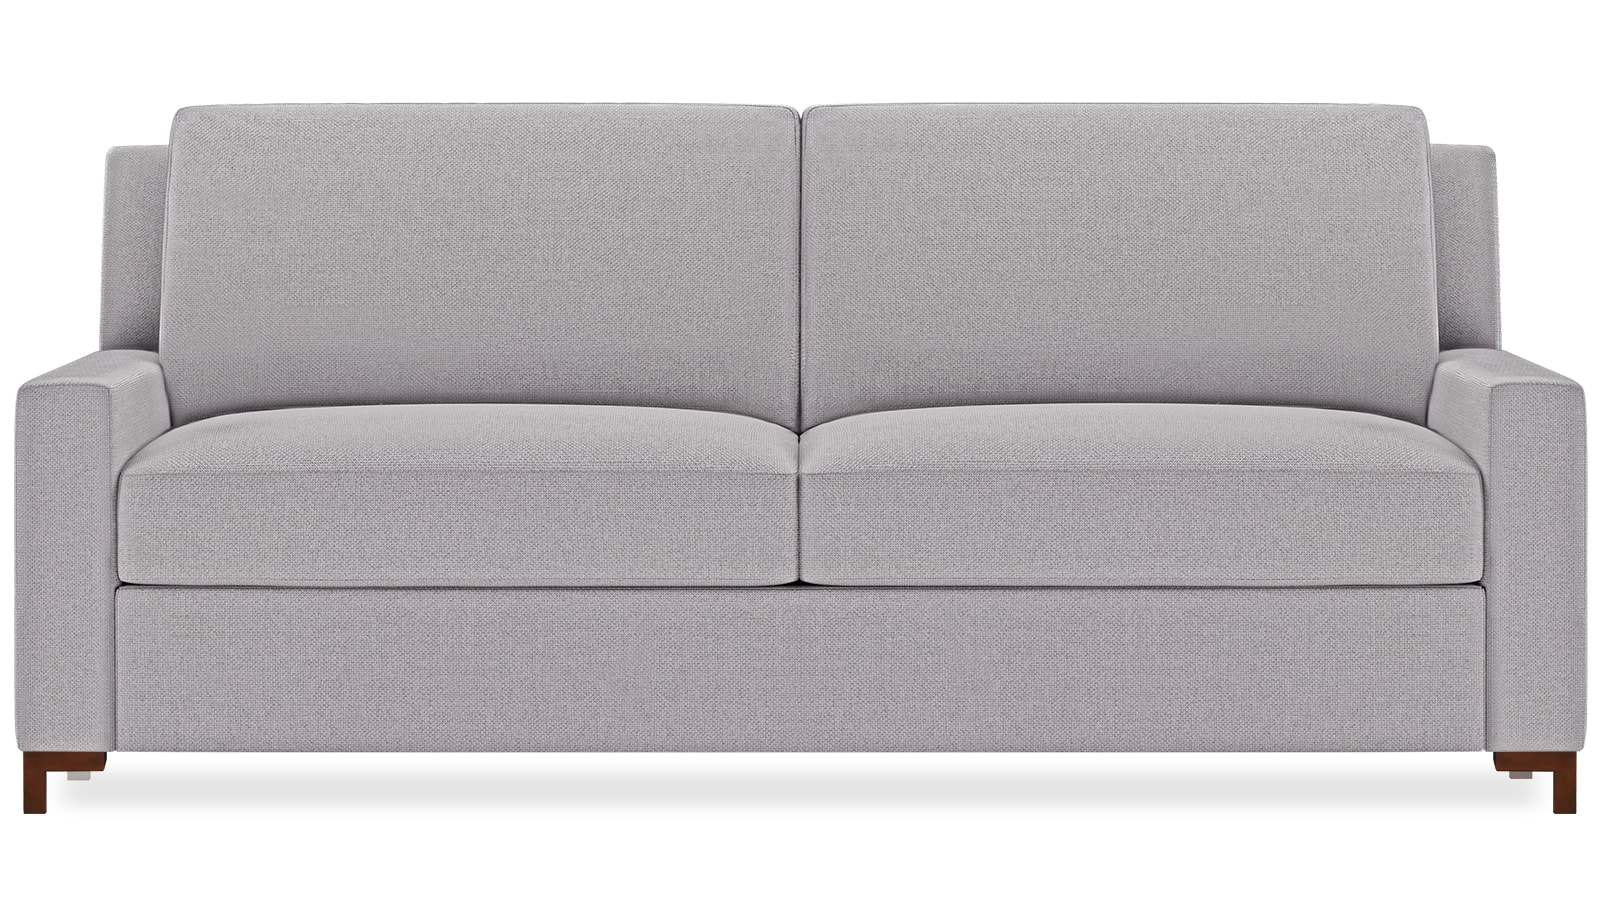 american leather bryson sleeper sofa